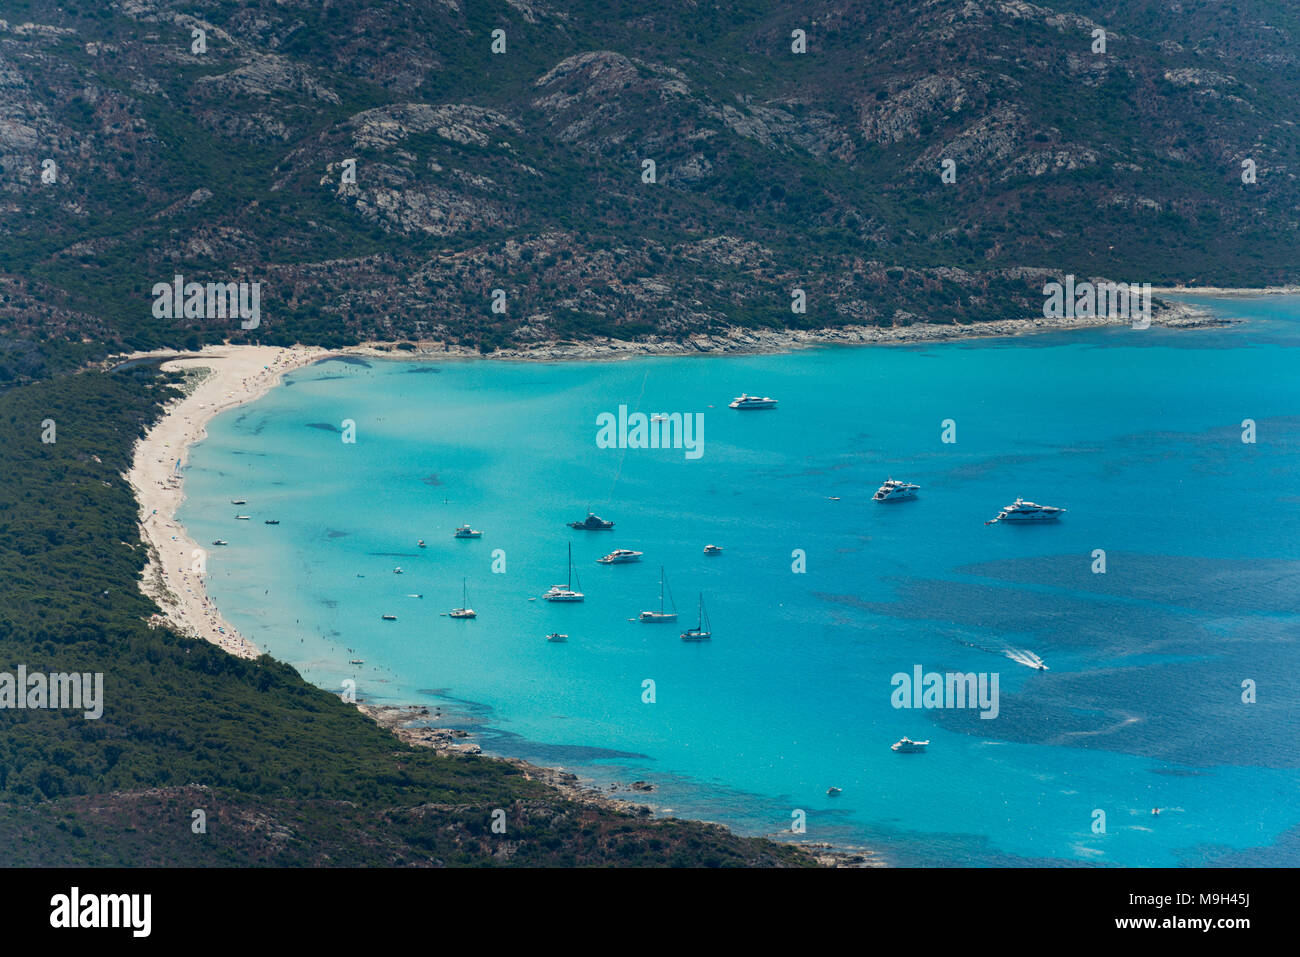 Aerial image of Corsica turquoise coastlinge showing Pointe de Curza and Punta di Furmiguli and Plage de Saleccia with private yachts Stock Photo